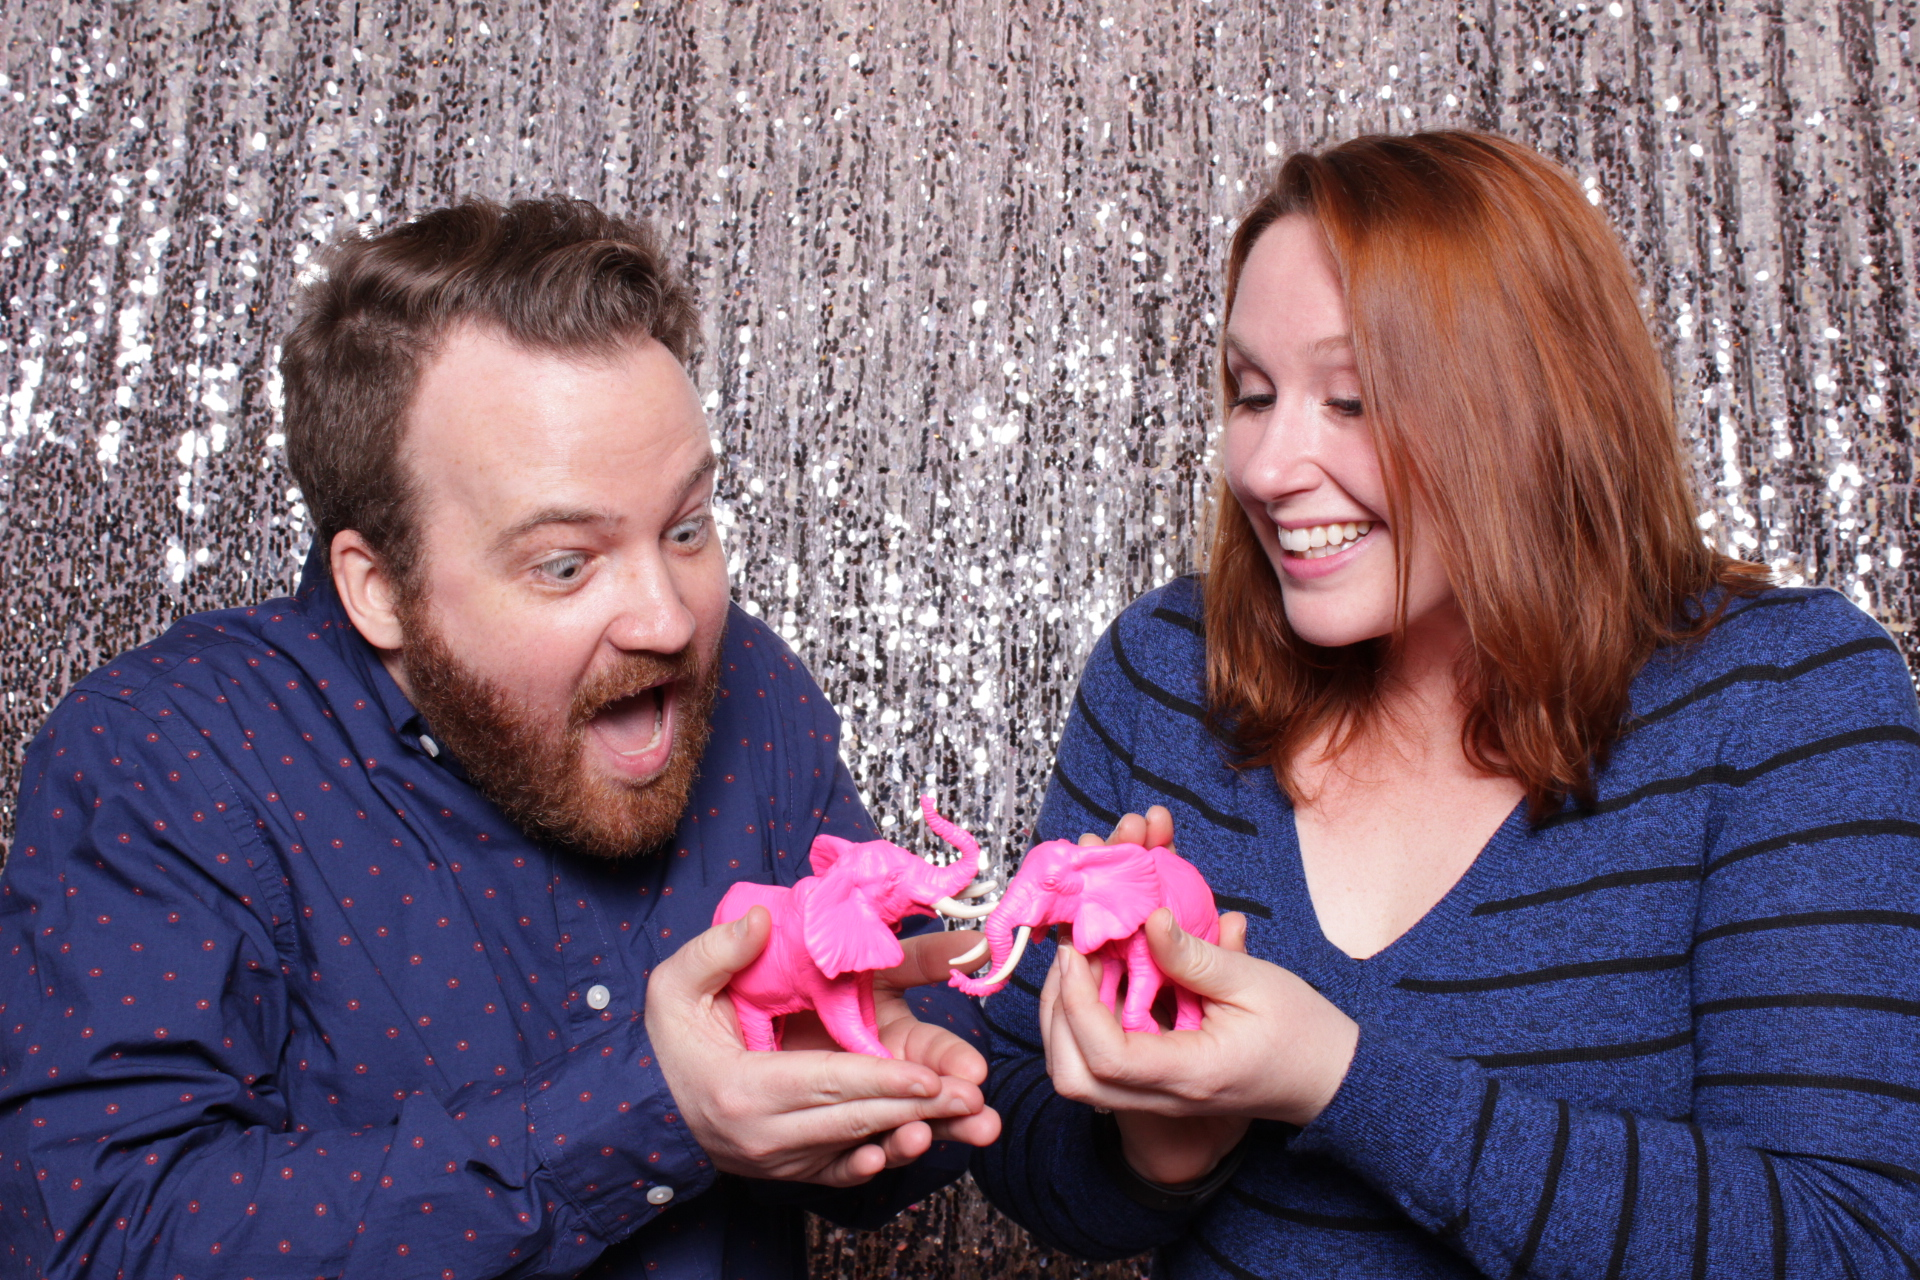 DATE NIGHT AT ZOOLIGHTS | HOT PINK PHOTO BOOTH